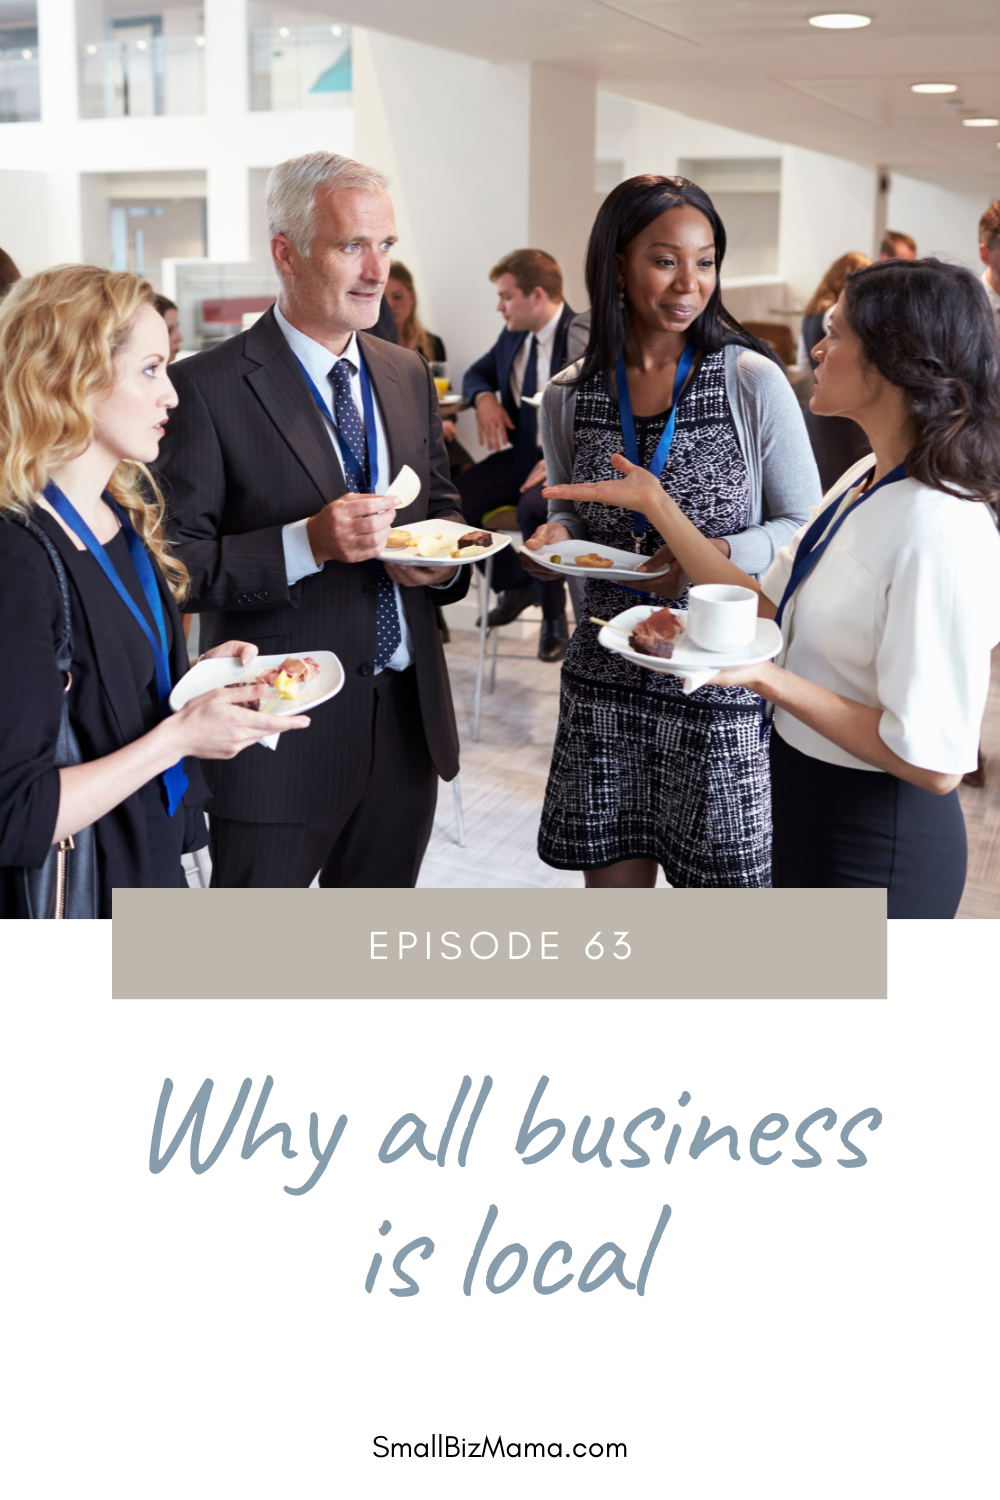 Why all business is local